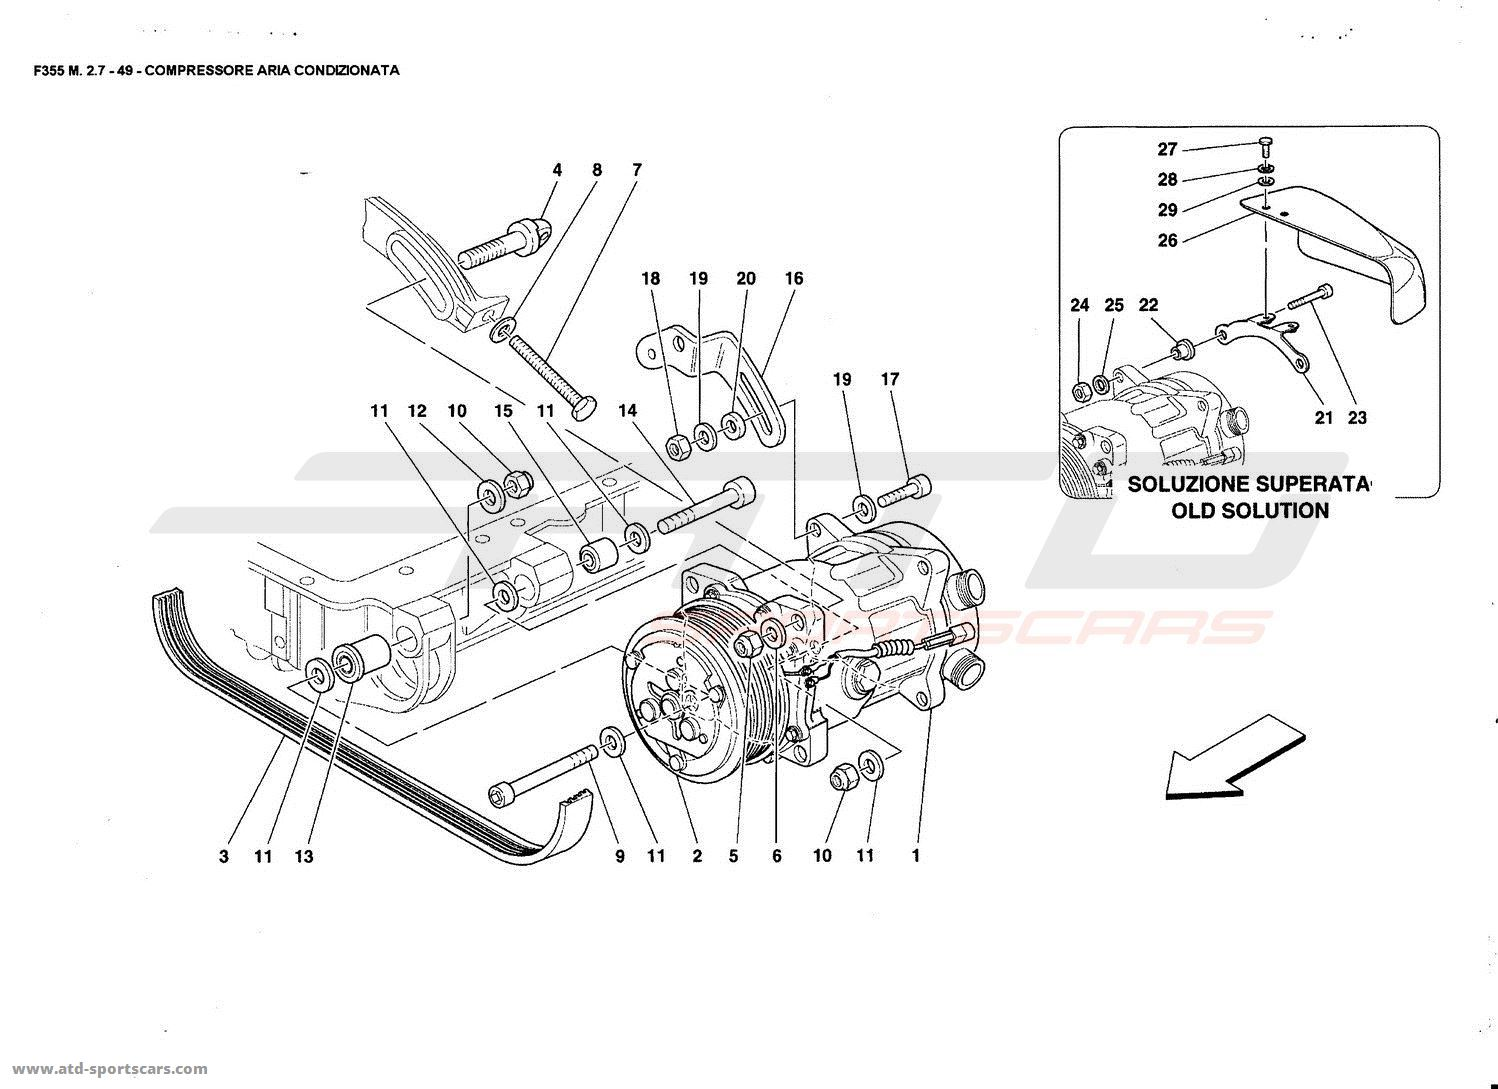 Ferrari 355 Wiring Diagram Manual Guide 1972 C10 Ac F355 2 7 Air Conditioning Compressor Parts At Atd Sportscars Rh Com